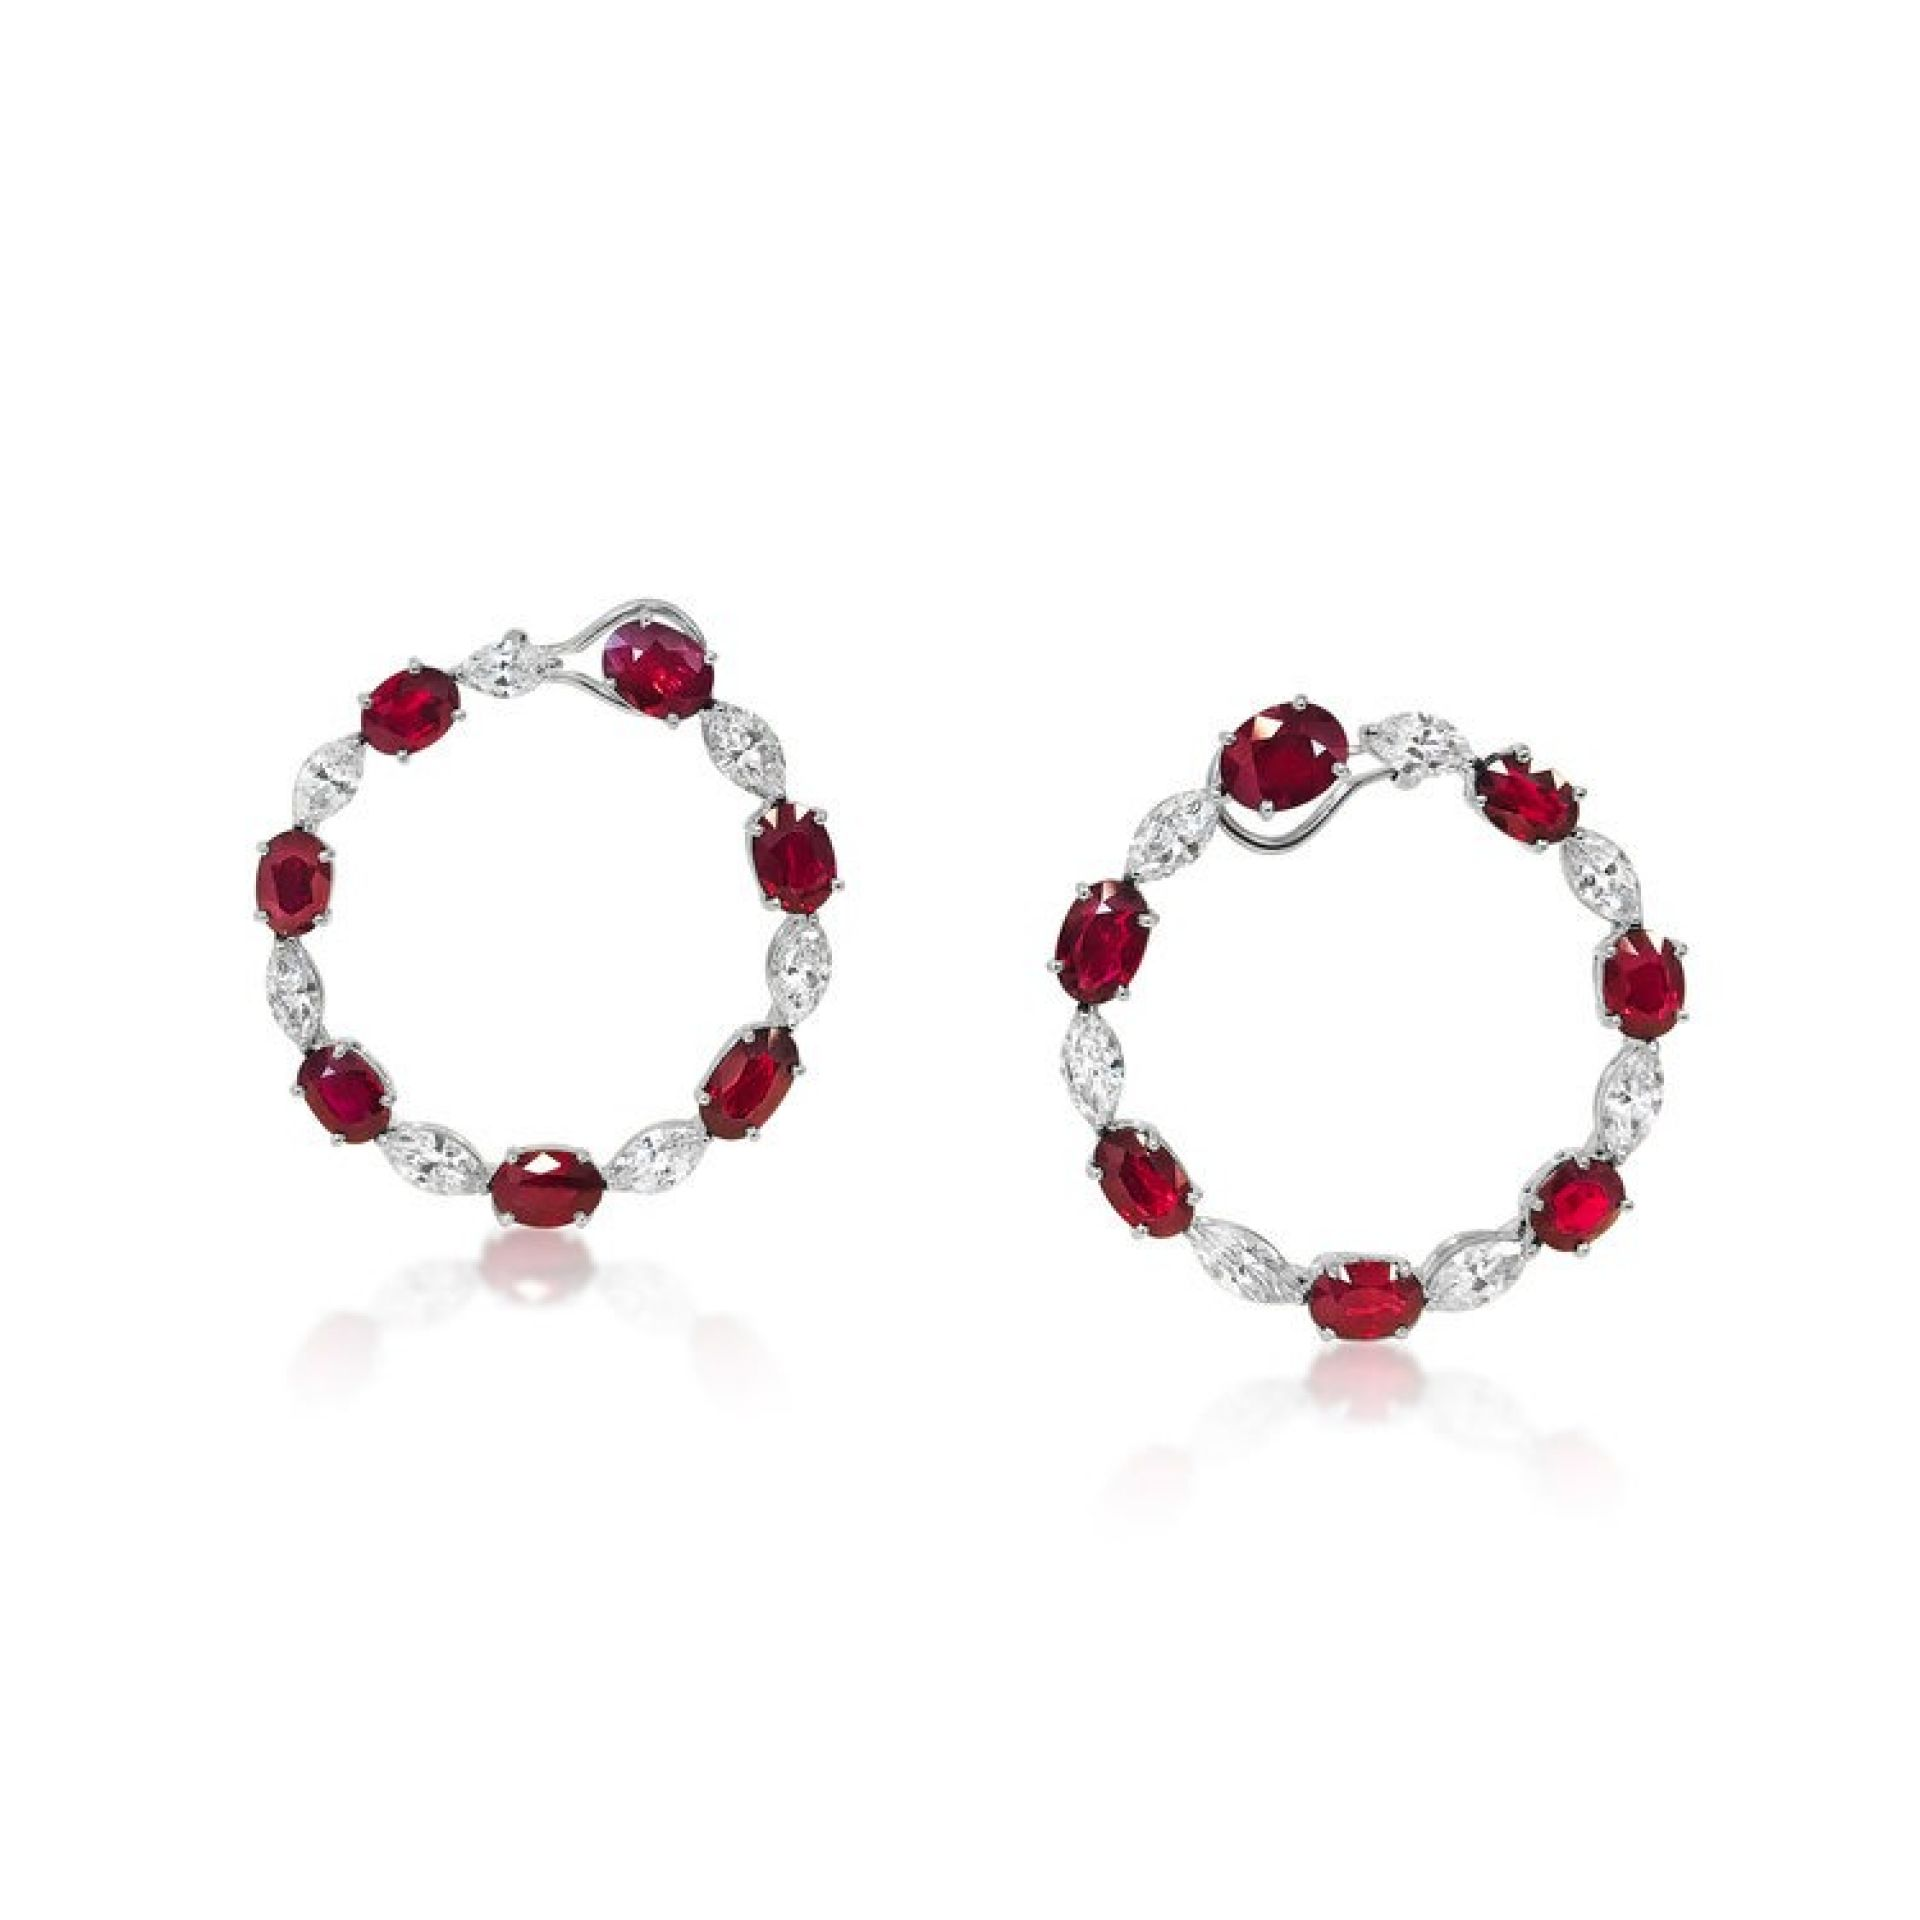 A PAIR OF RUBY AND DIAMOND HOOP EAR CLIPS